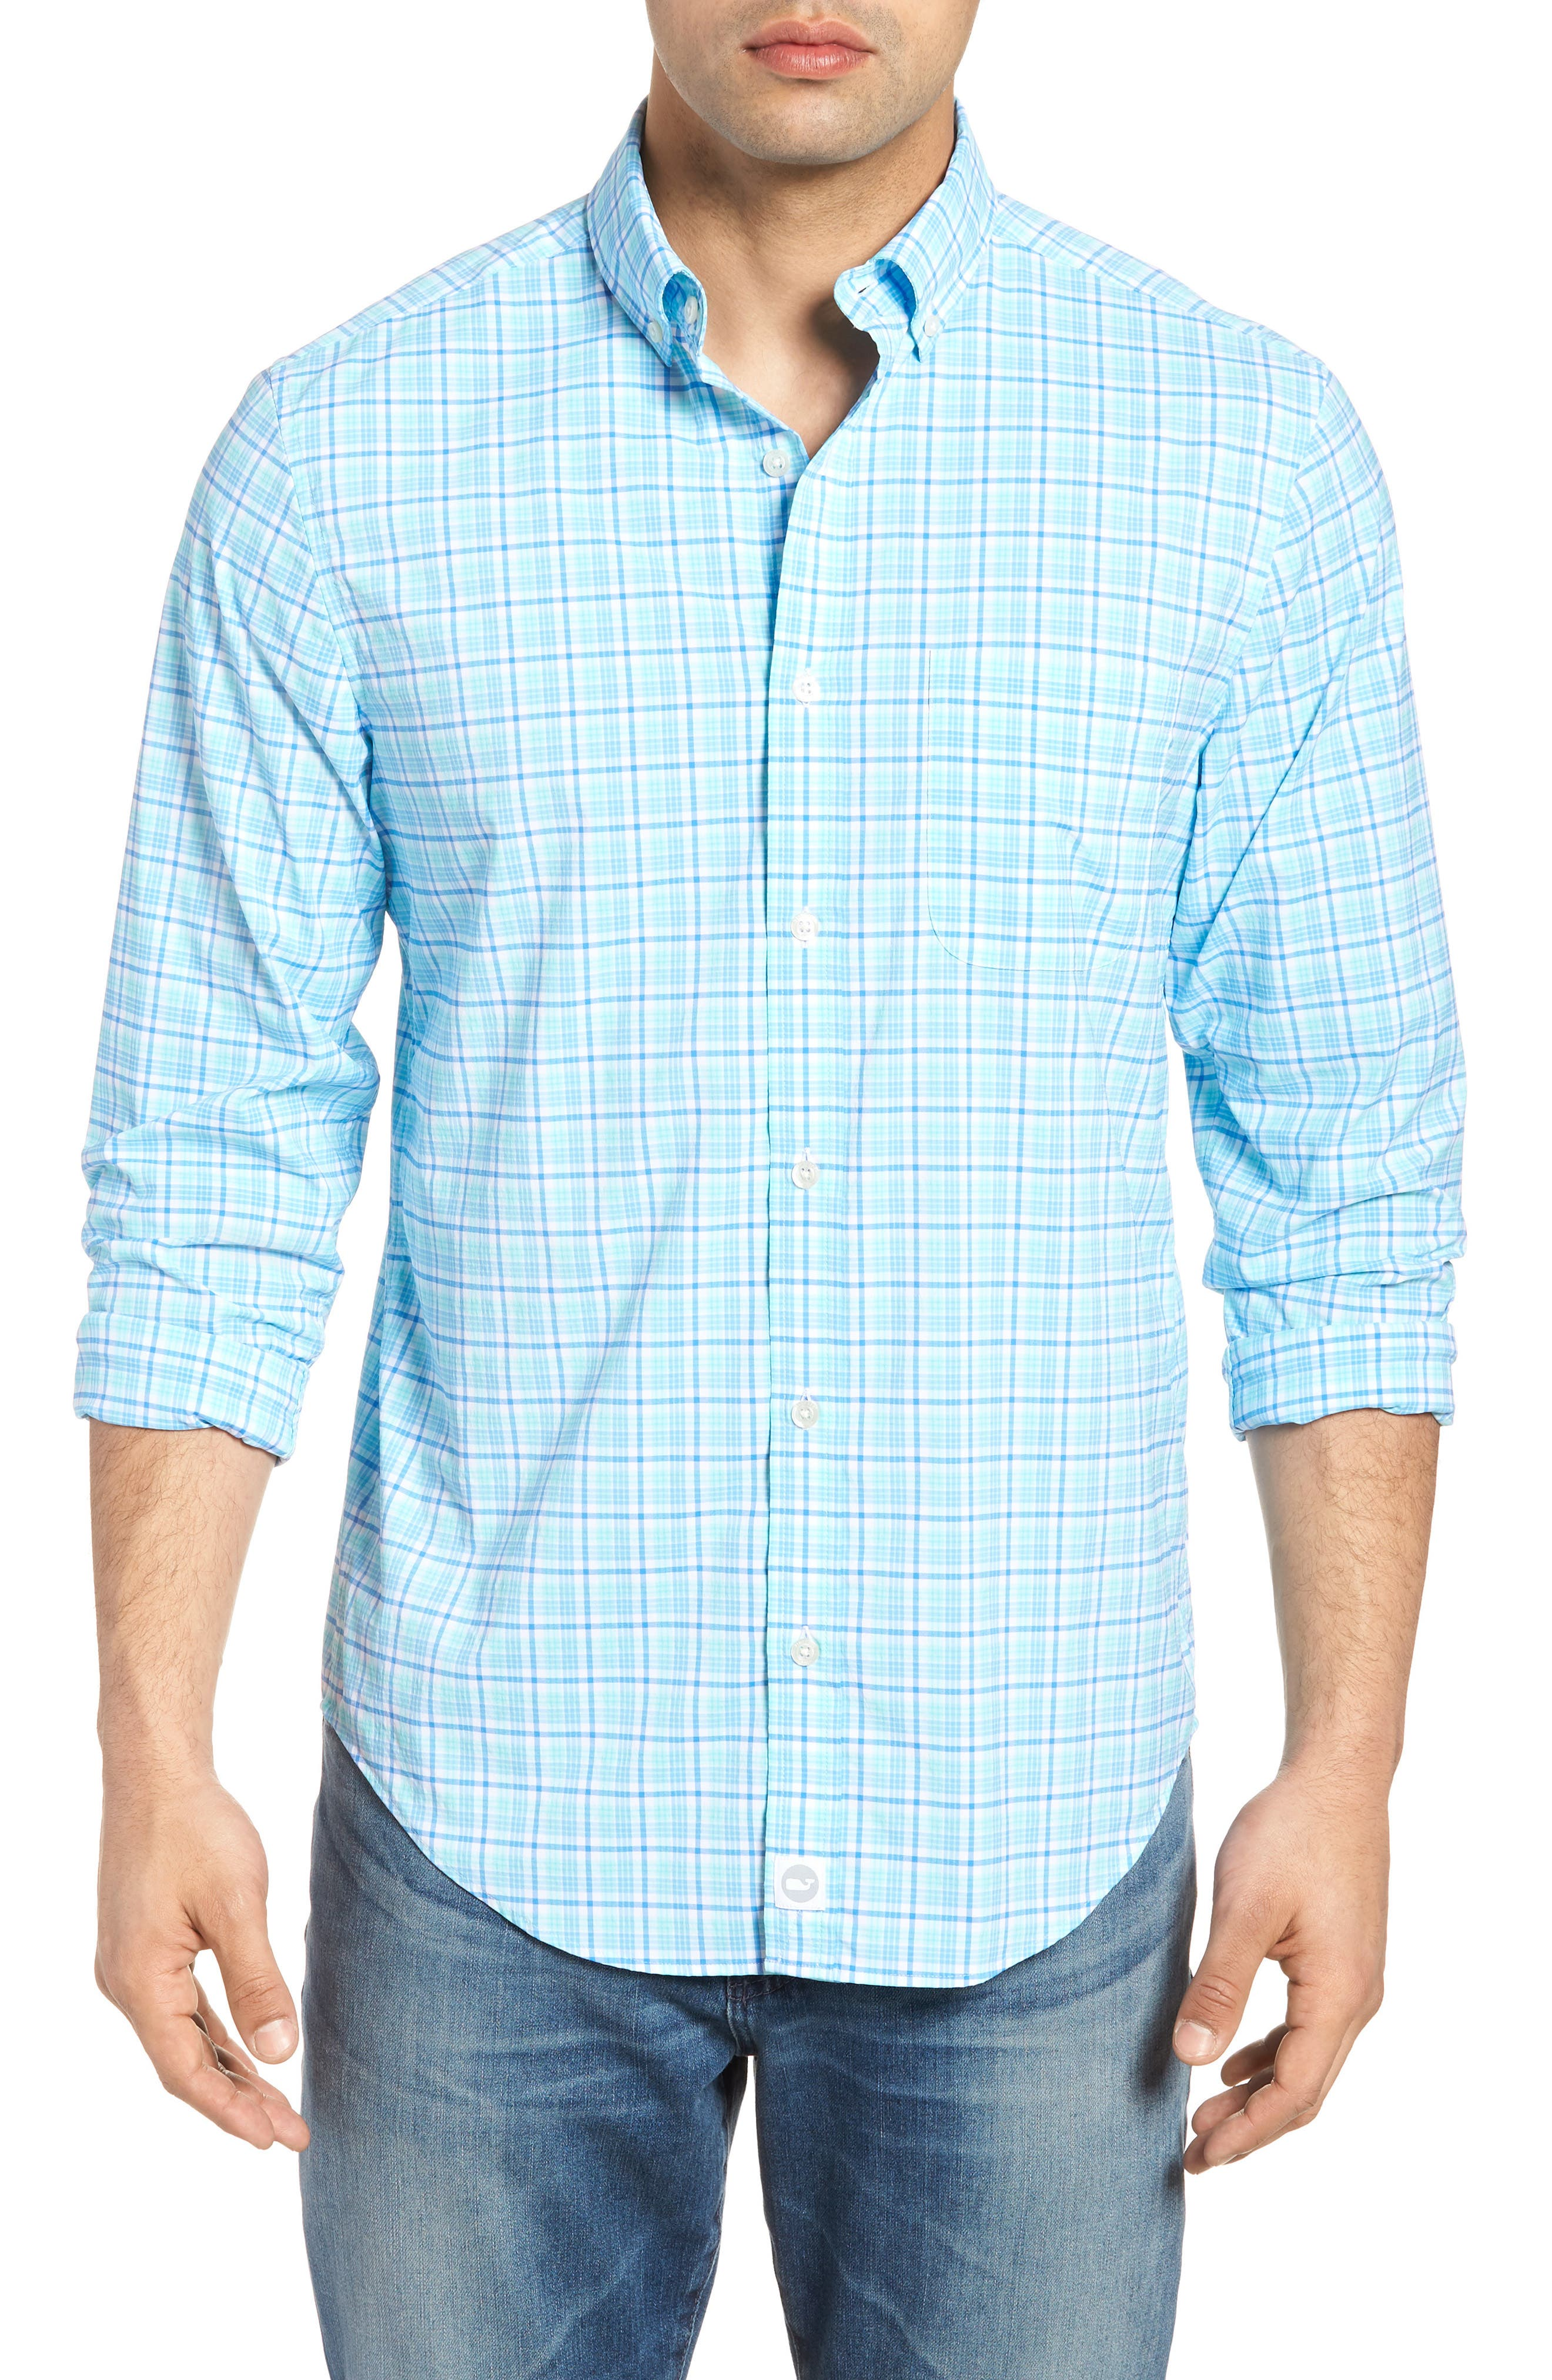 Tipsy Bar Classic Fit Stretch Plaid Sport Shirt,                         Main,                         color,